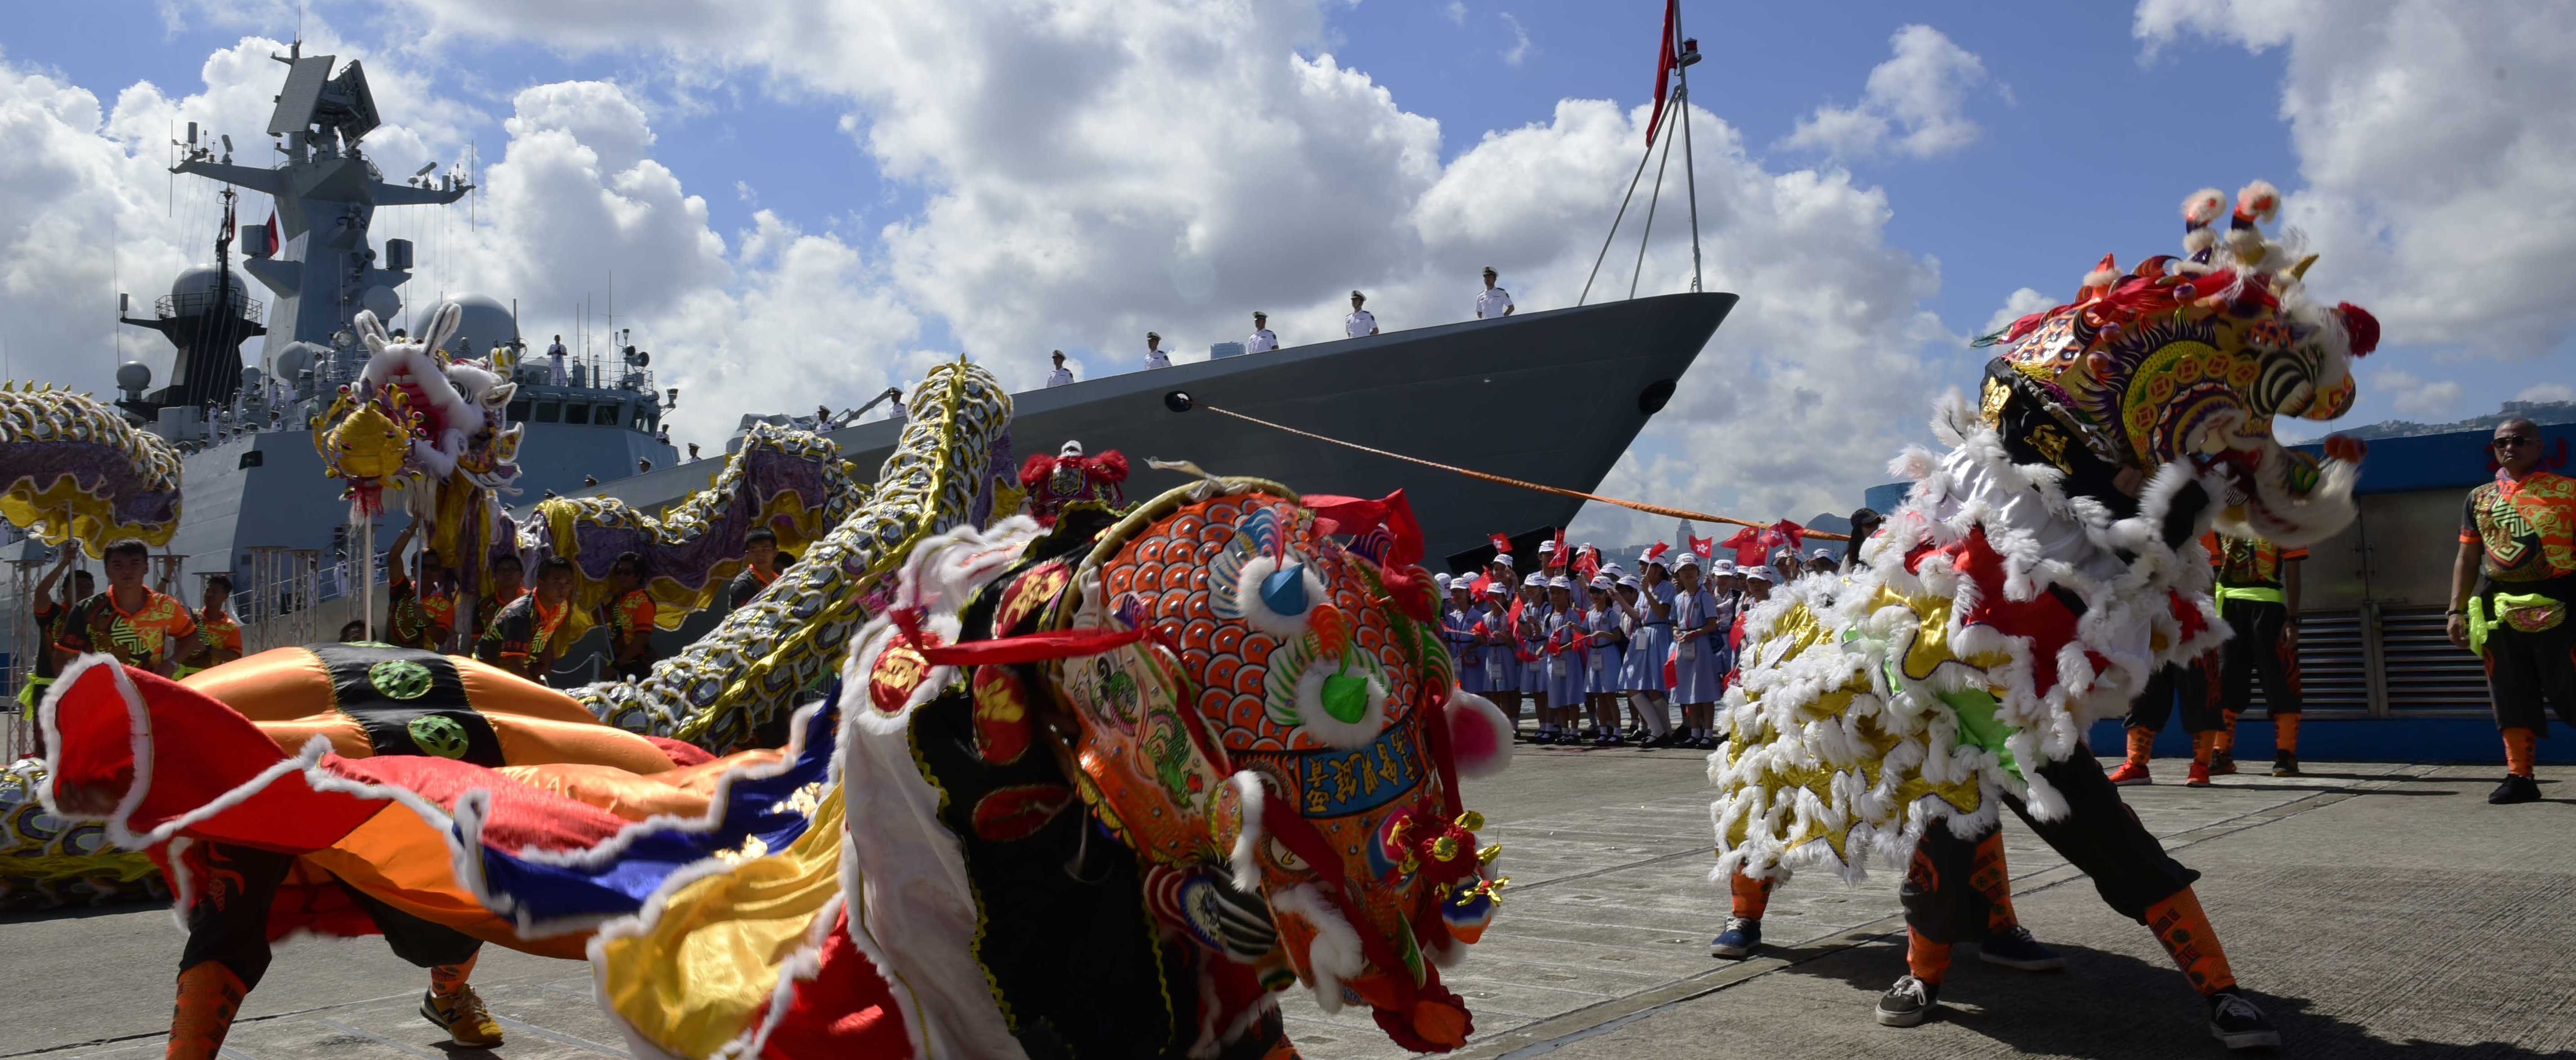 Farewell for Chinese aircraft carrier Liaoning and its escort ships, Hong Kong (Photo: Xu Dongdong/Getty Images)